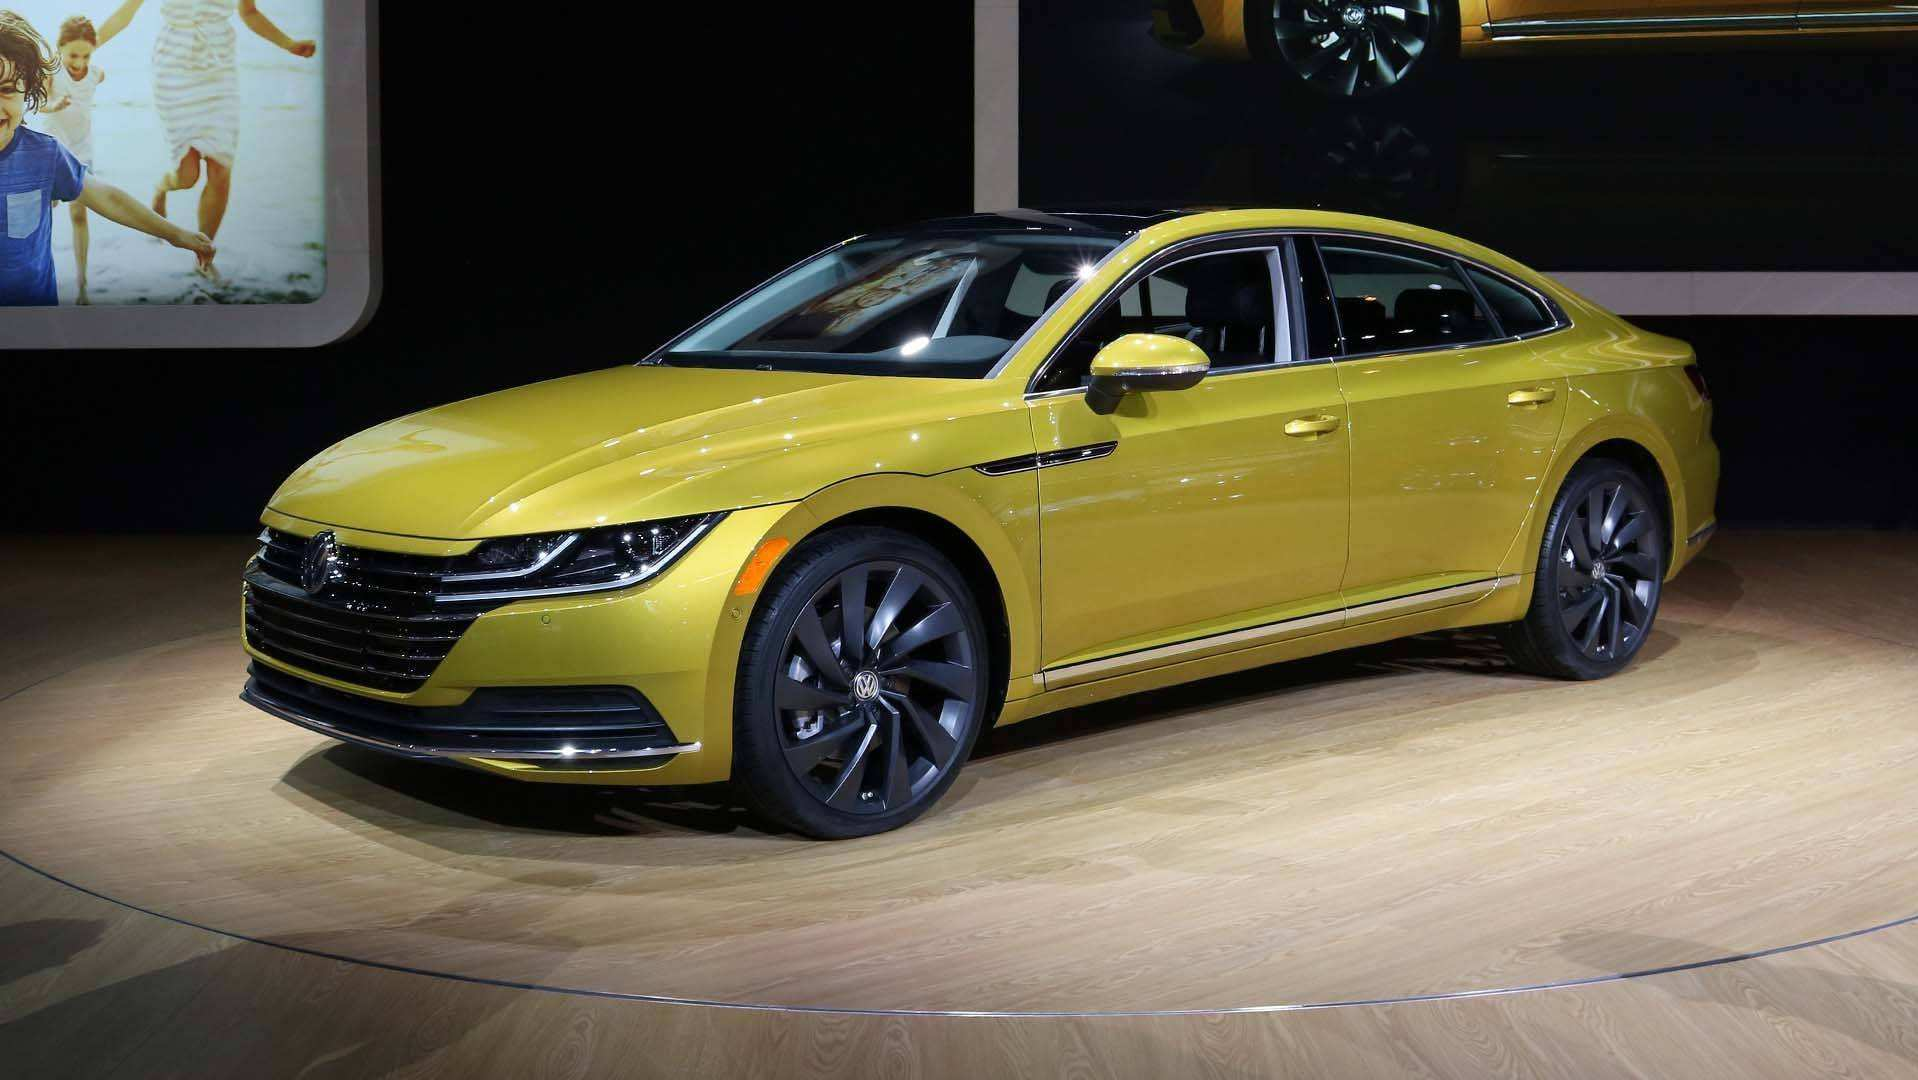 39 Concept of Arteon Vw 2019 Exterior by Arteon Vw 2019